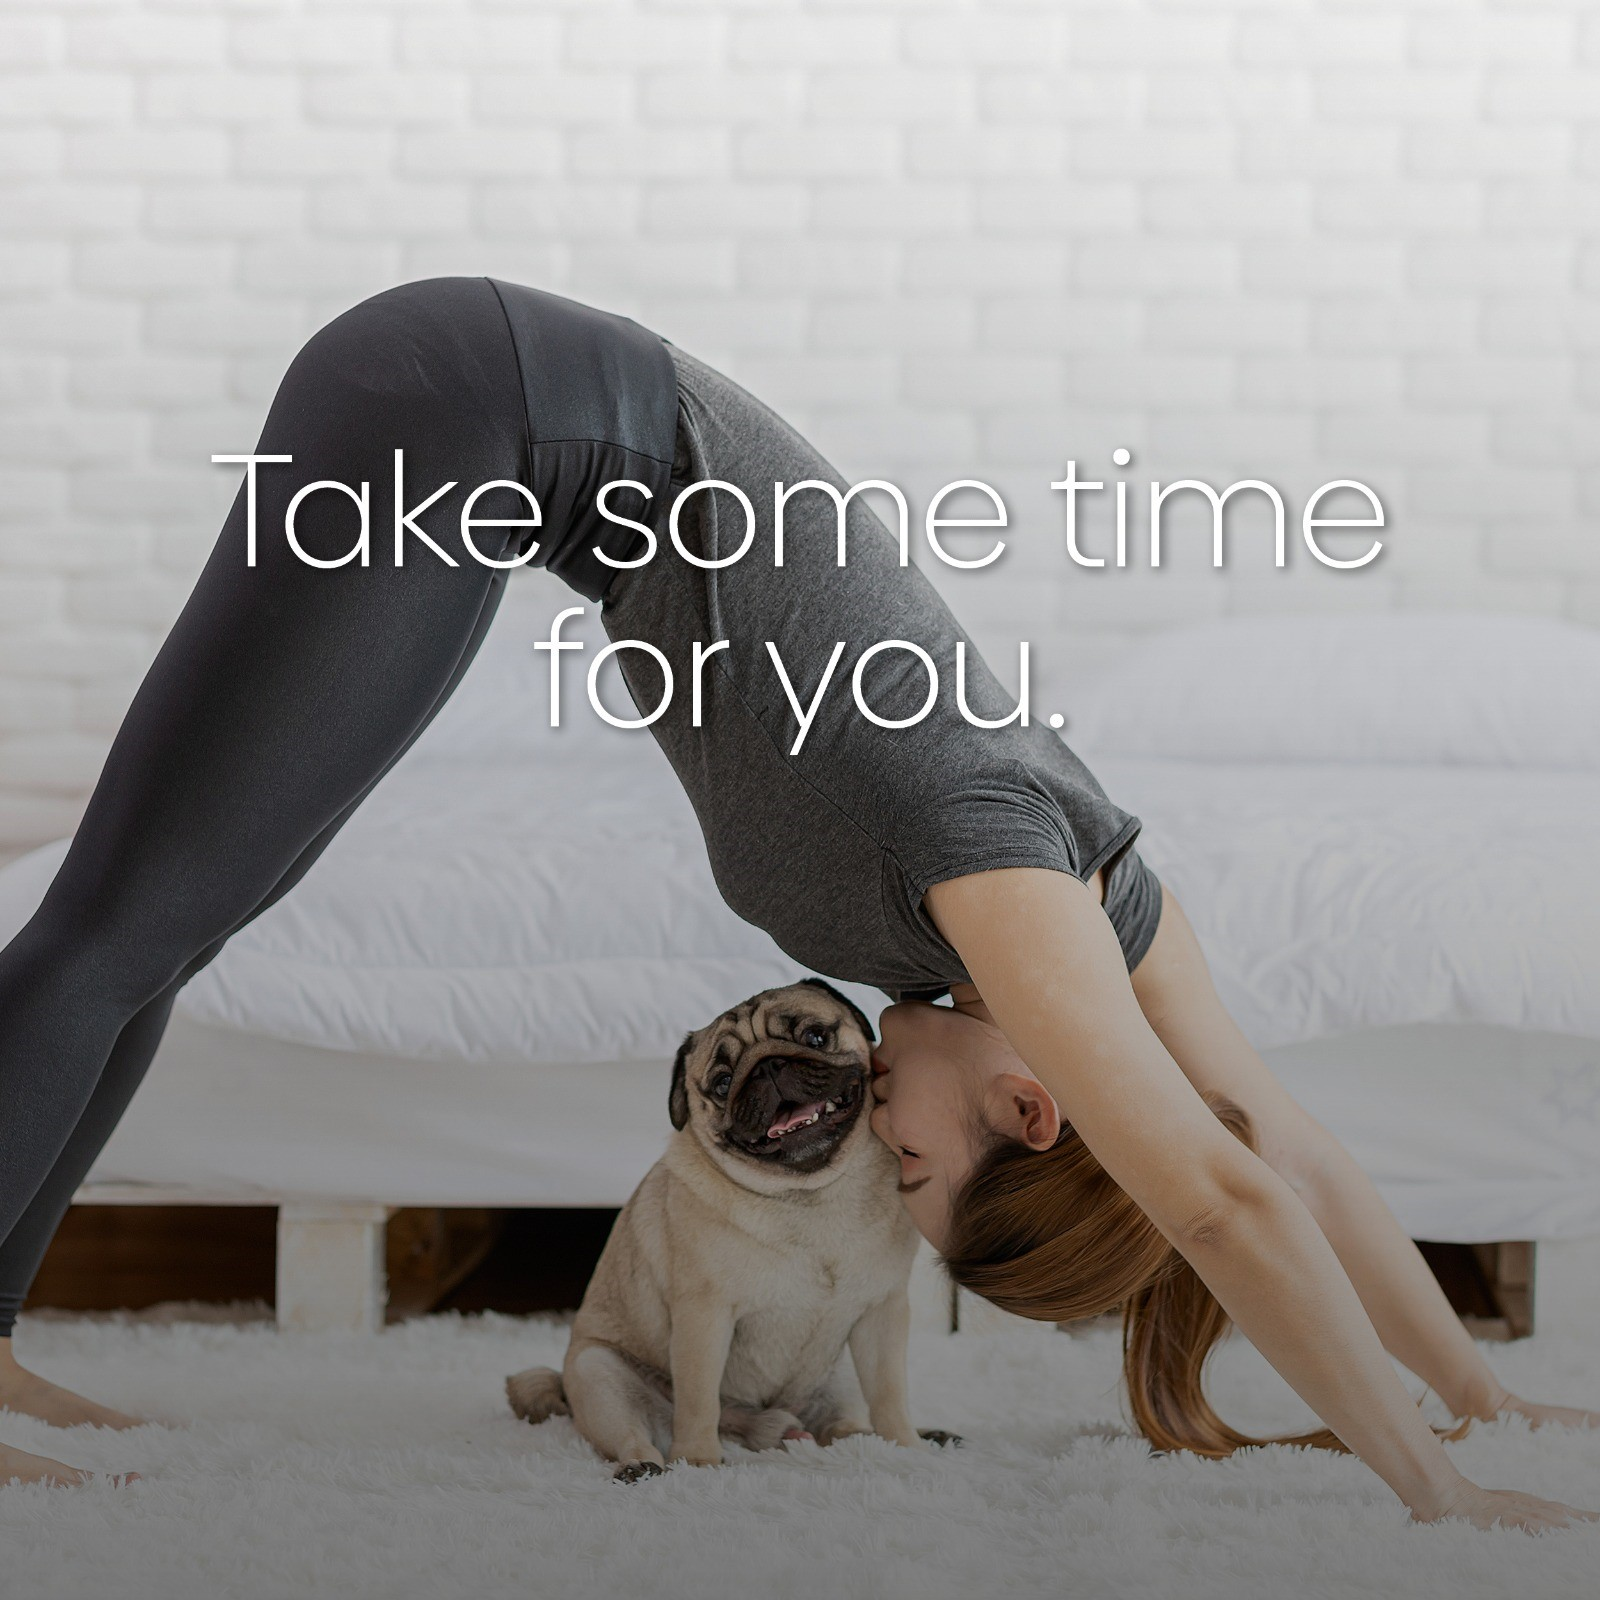 Take some time for you..